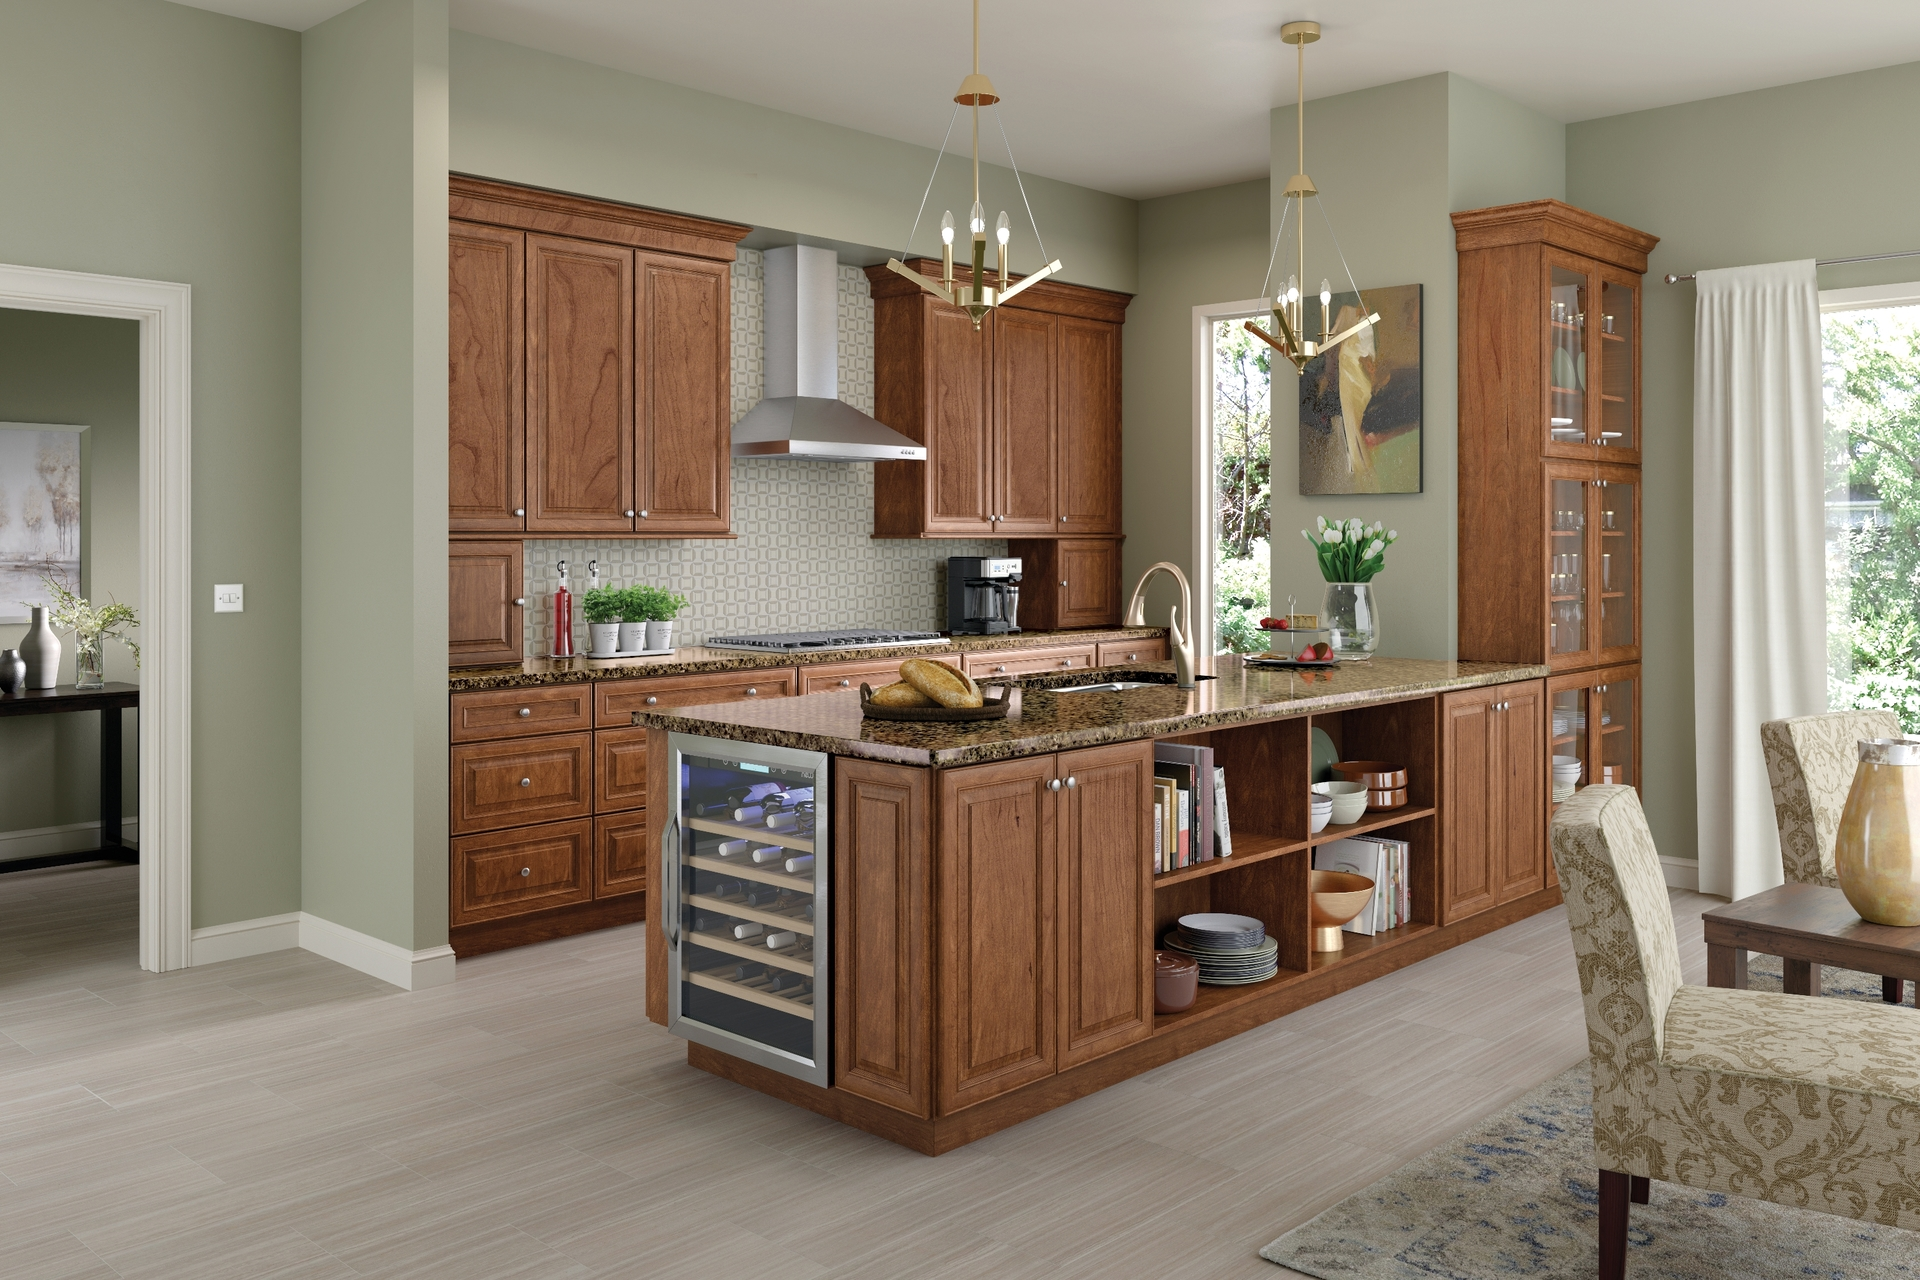 Cardell Kitchen Cabinets Rotherham Cherry In Ginger With Sable Glaze